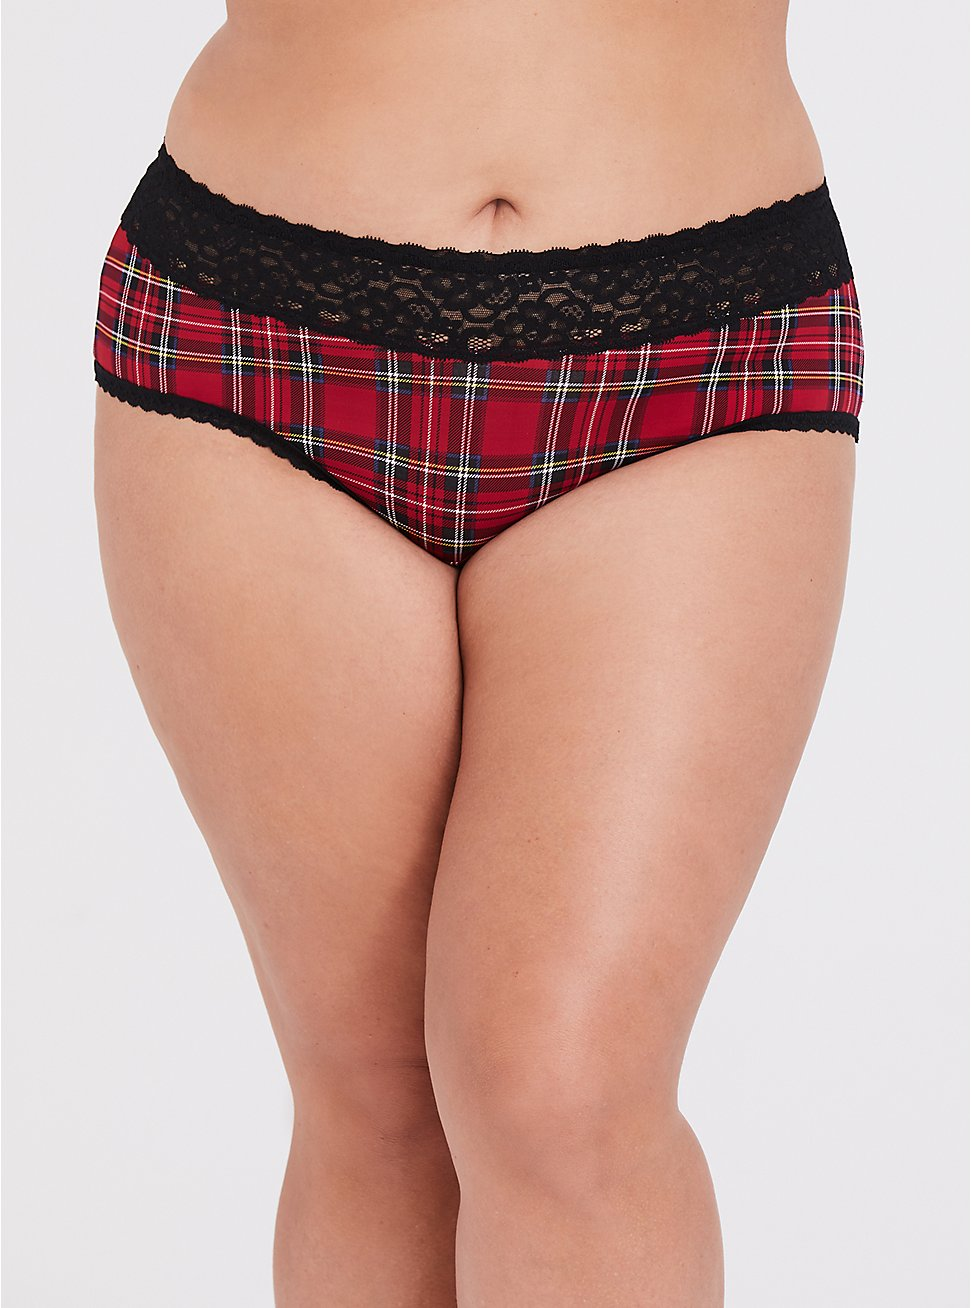 Plus Size Red Plaid & Black Wide Lace Shine Cheeky Panty, PLAID-RED, hi-res